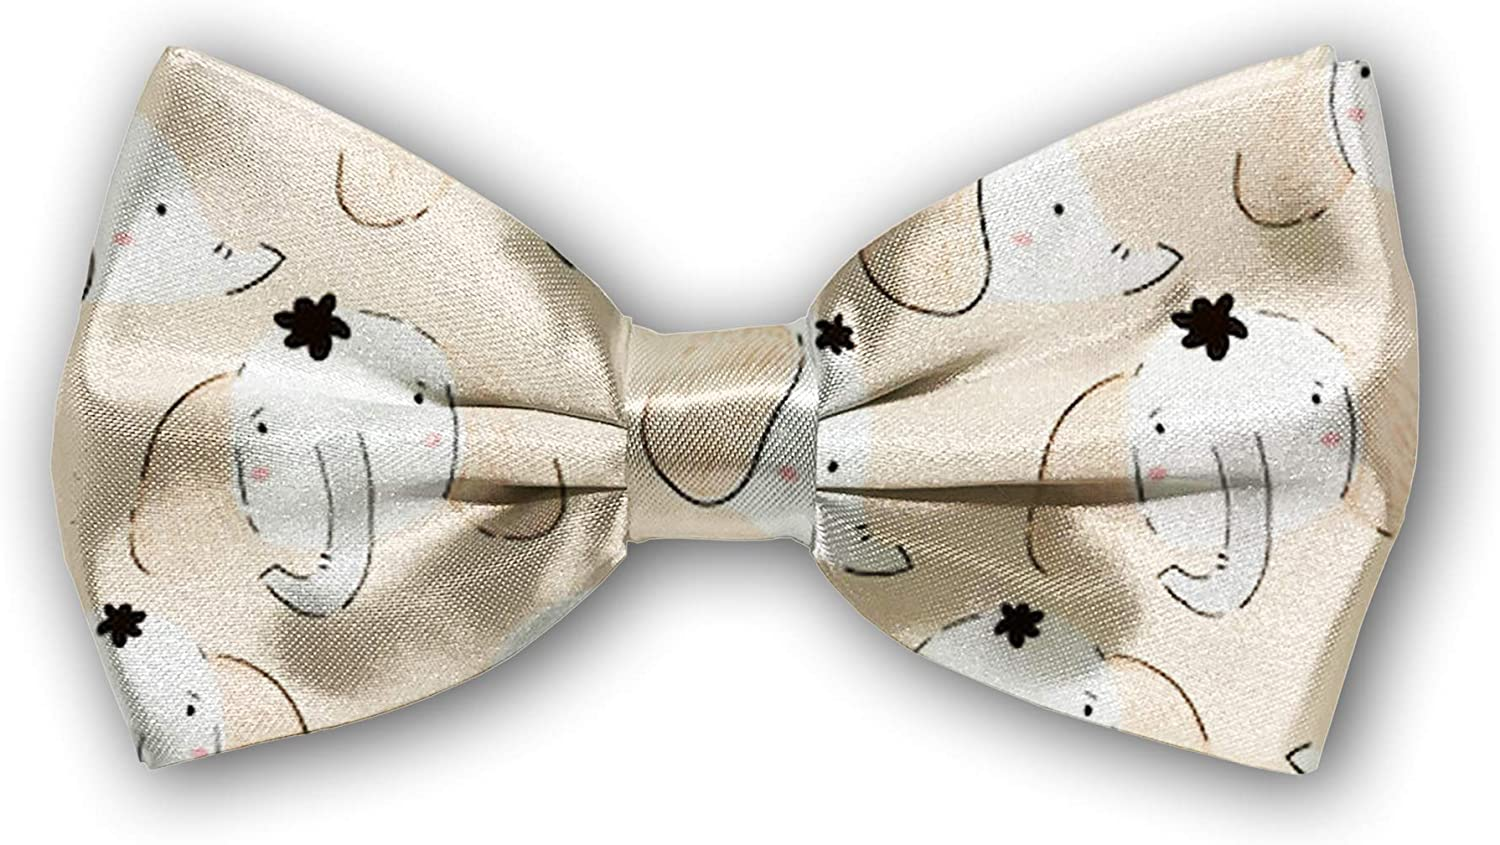 Bow Tie Tuxedo Butterfly Cotton New item Boys for Mens Adjustable Max 41% OFF Bowtie